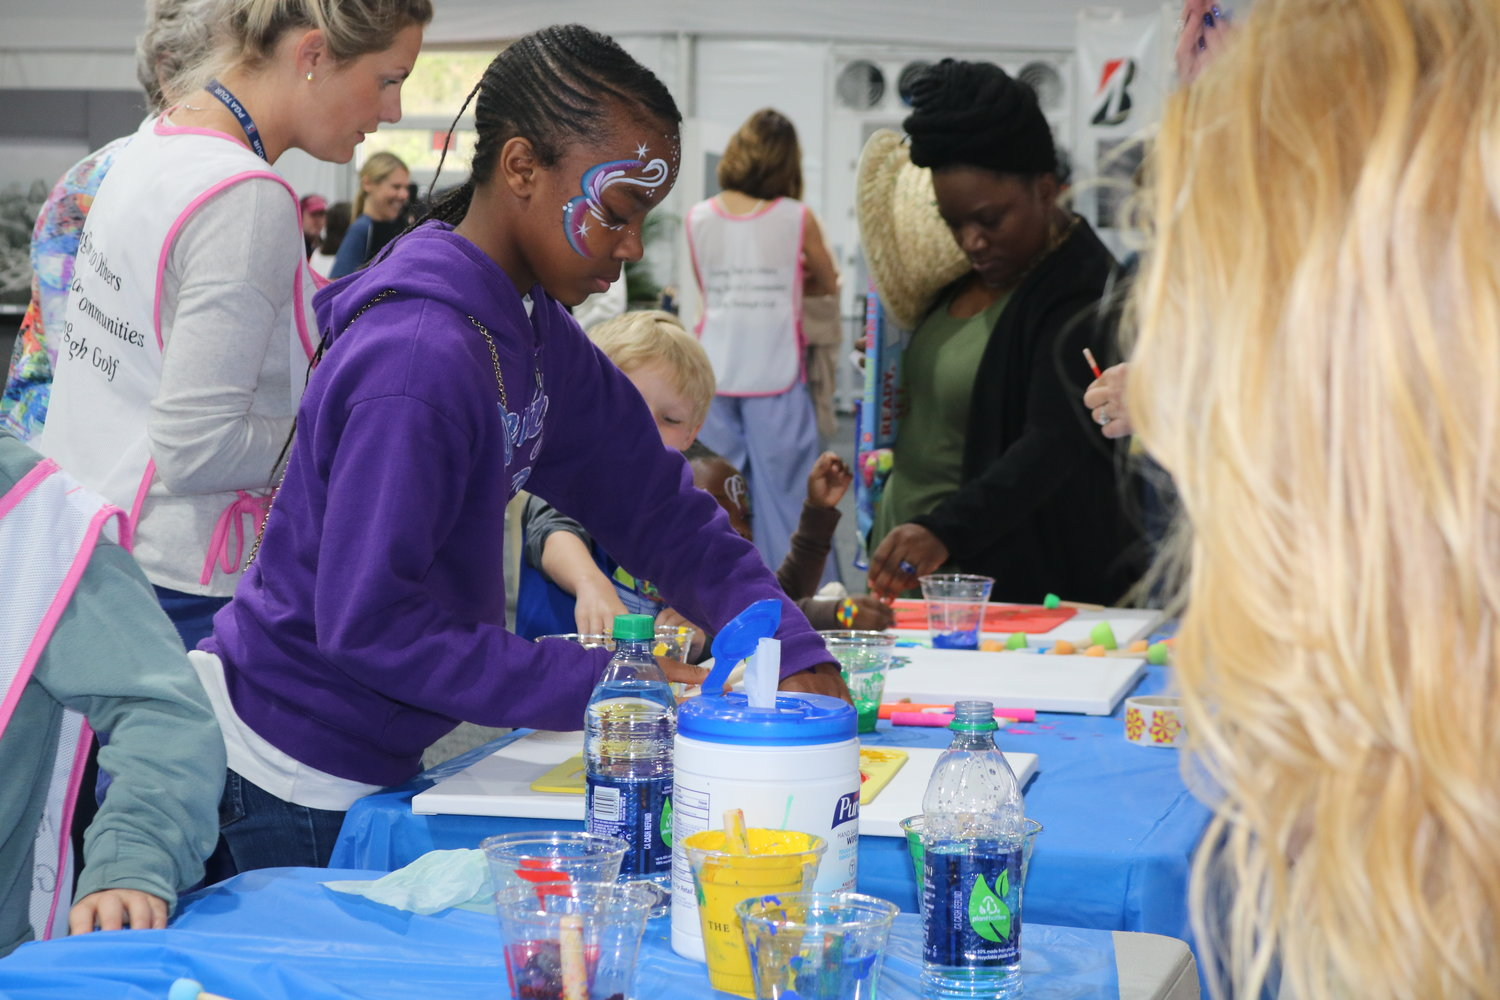 Kids at the event enjoys painting and arts and crafts.